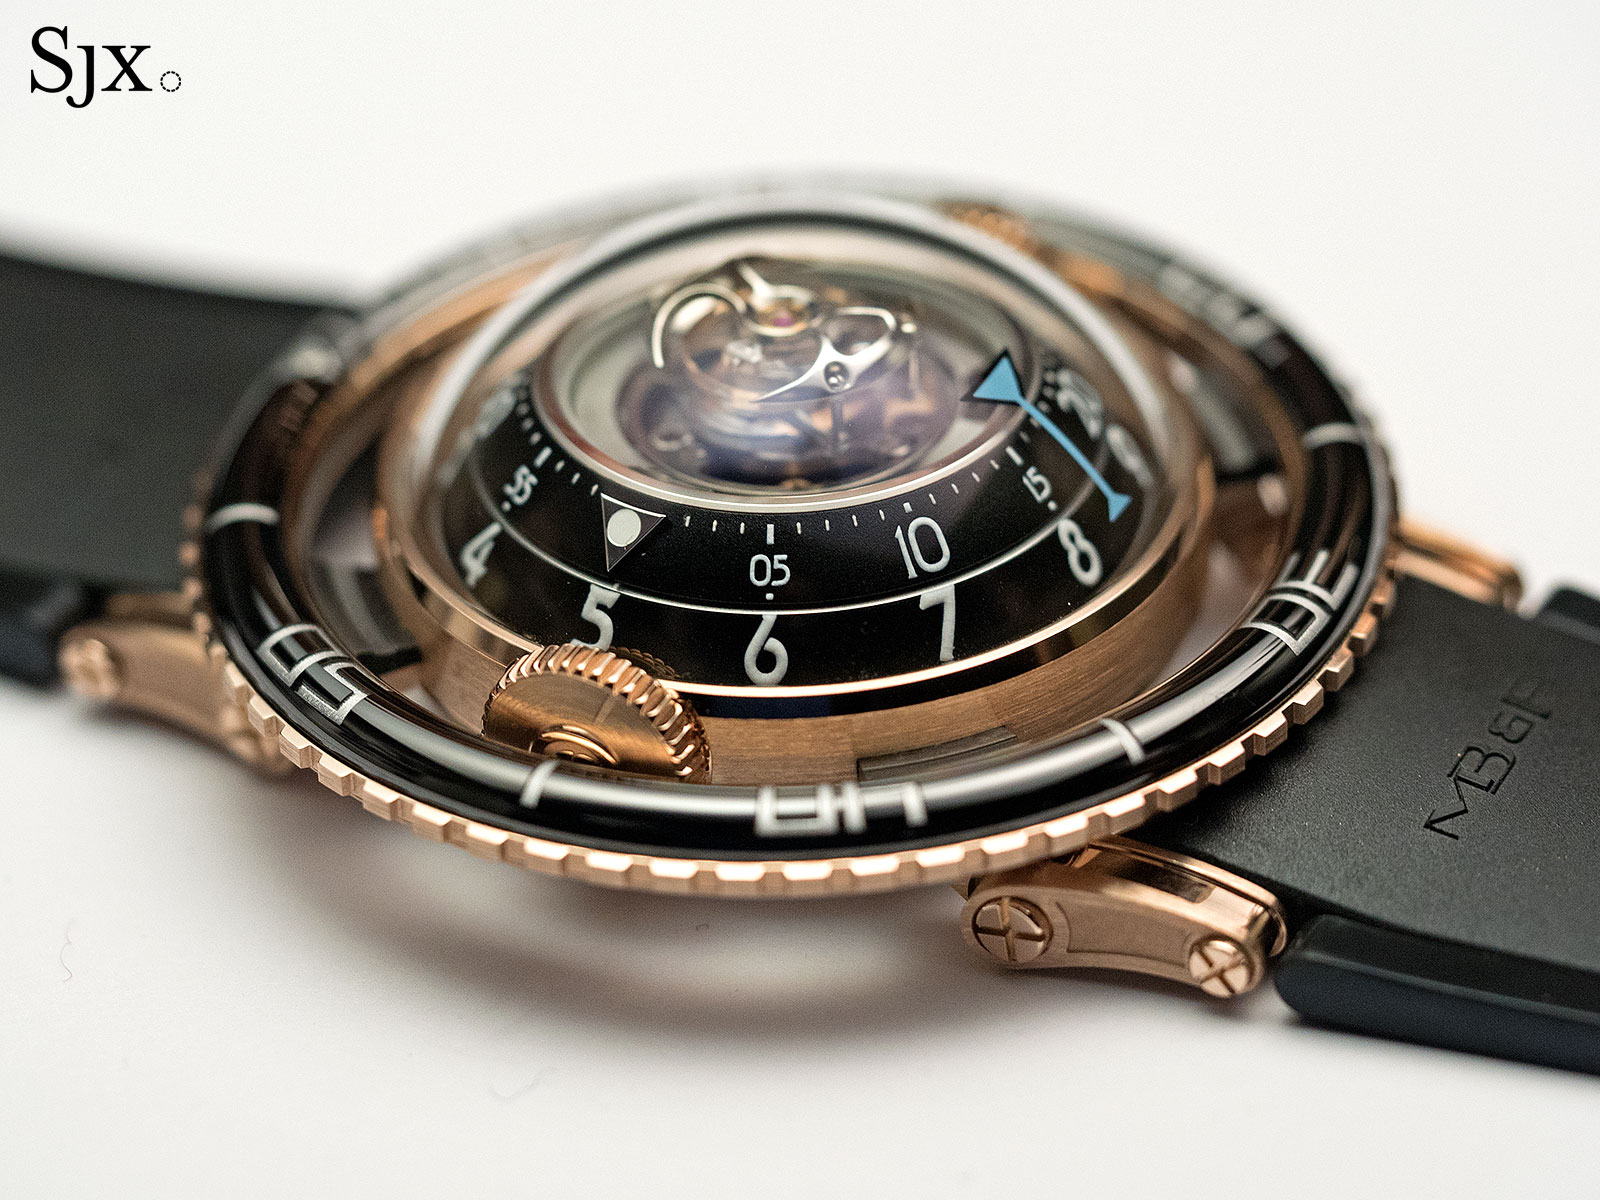 MB&F HM7 Aquapod red gold 4